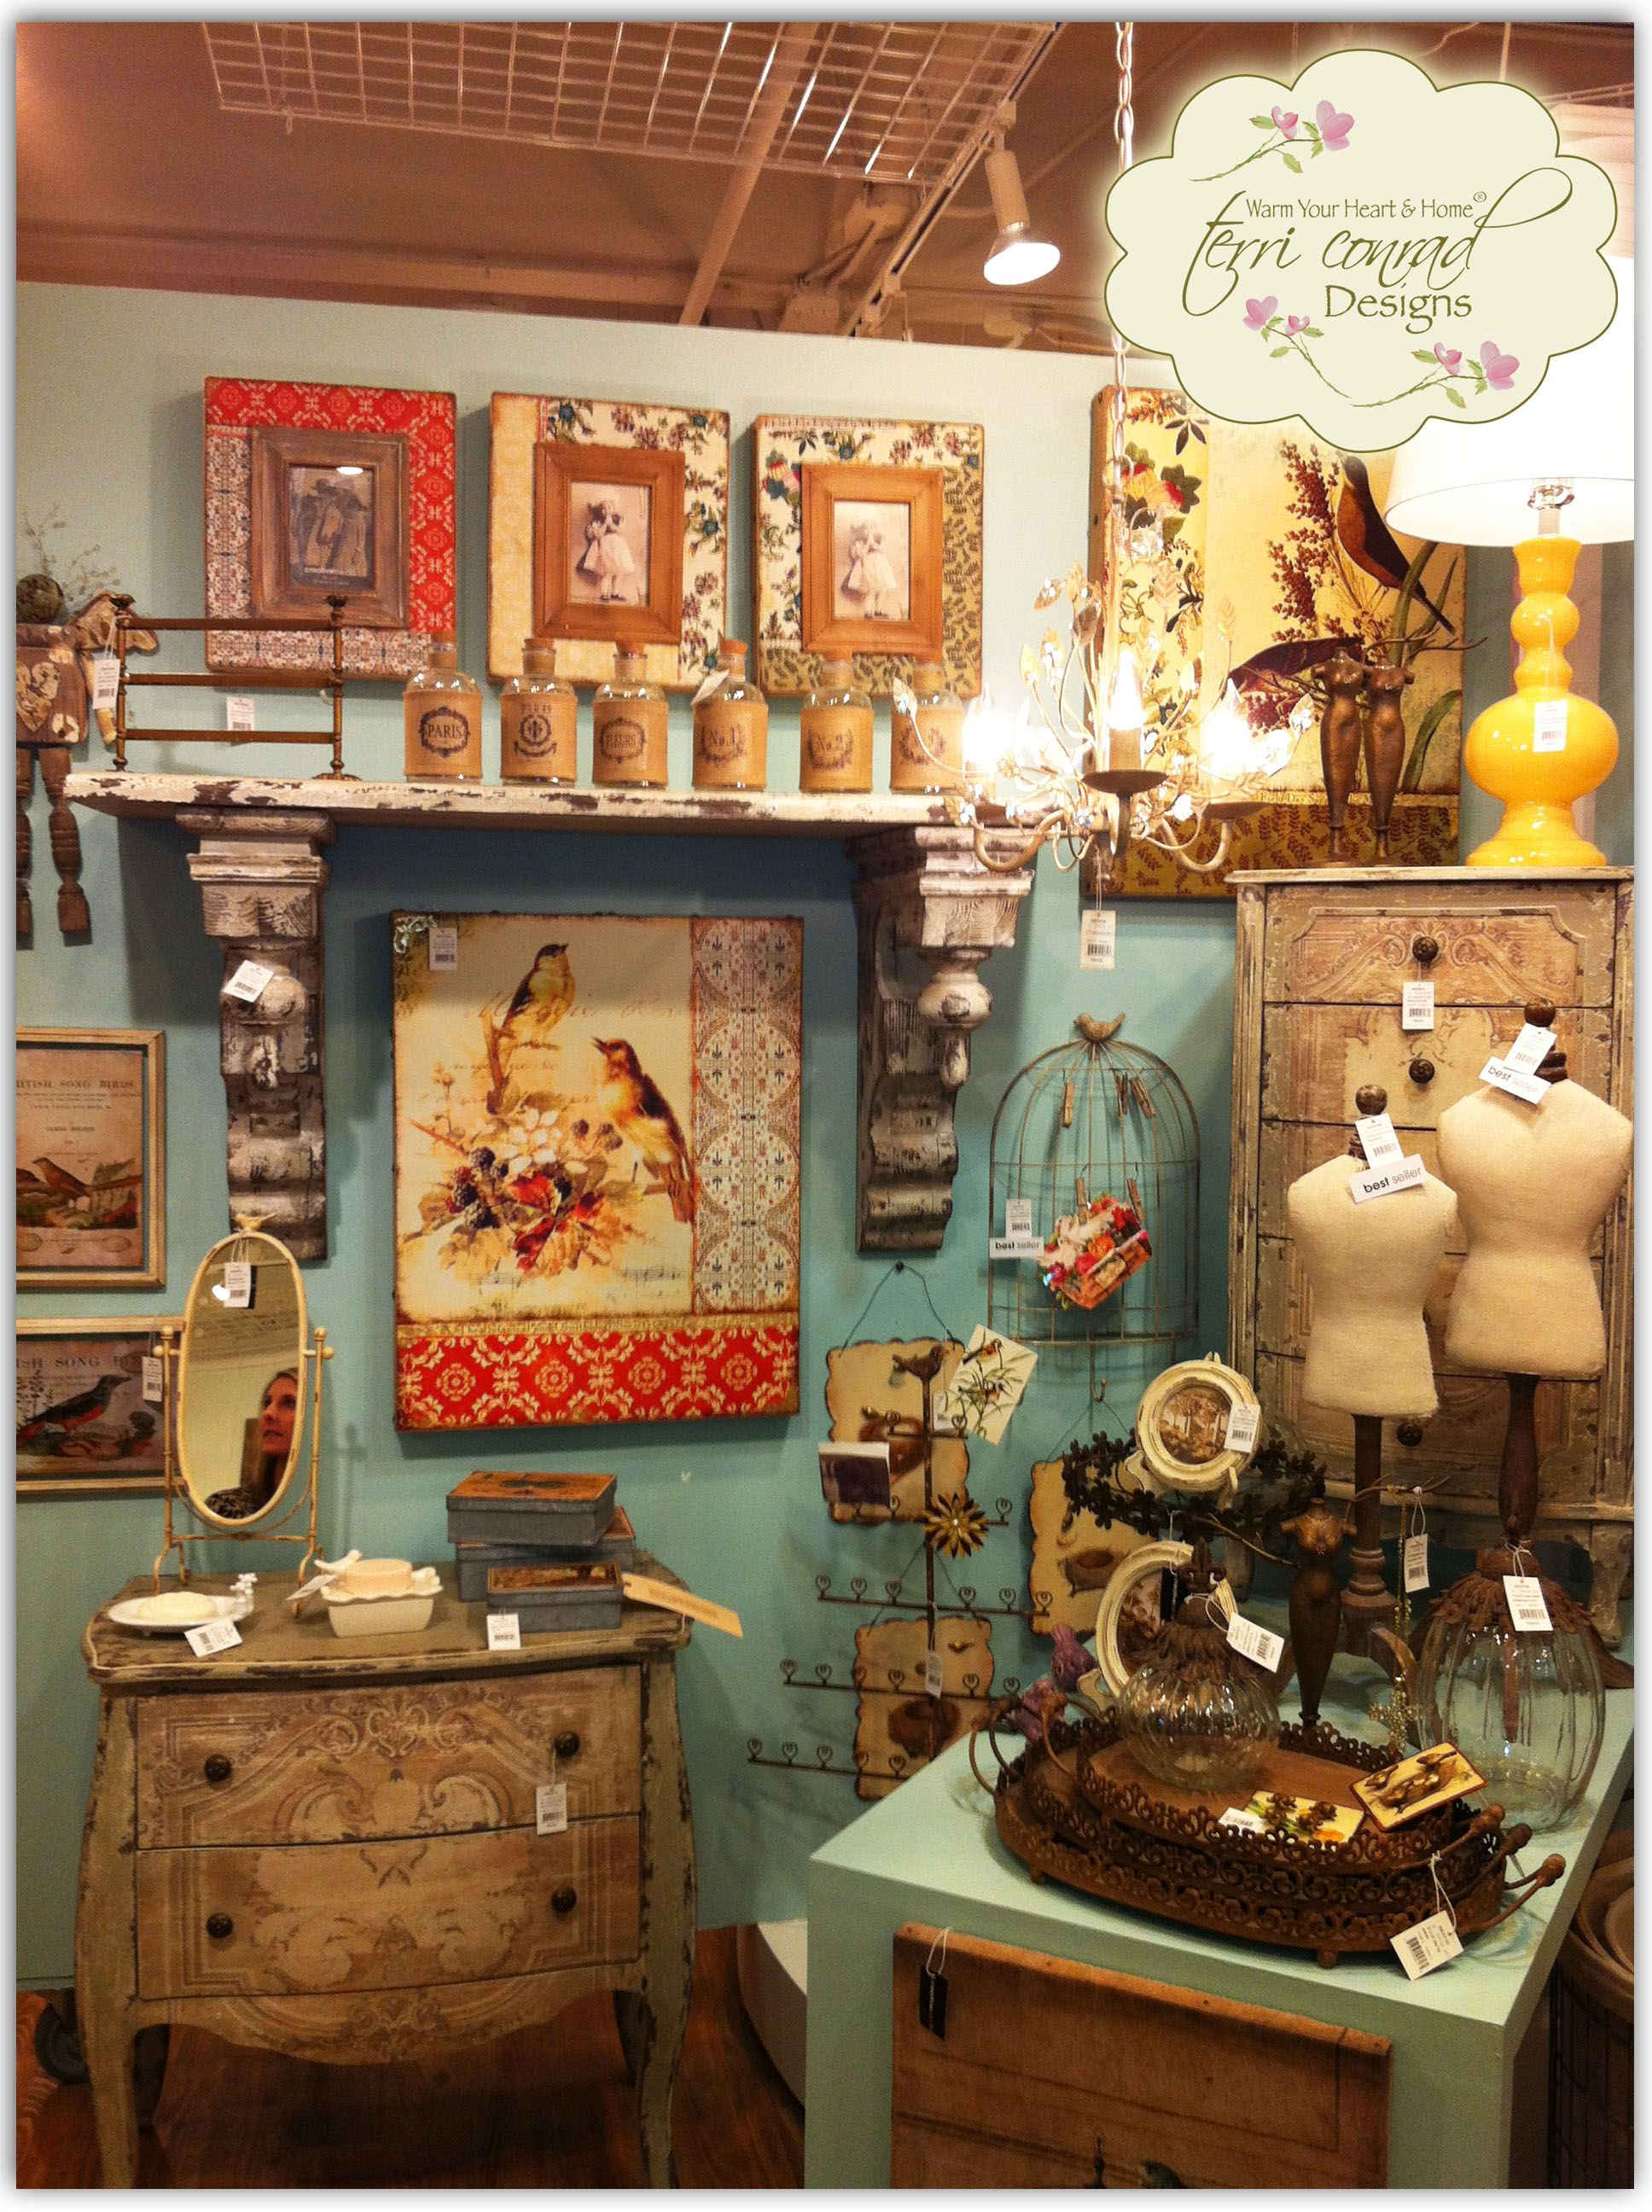 Terri Conrad Designs For Creative Co Op #vintage Inspired #home